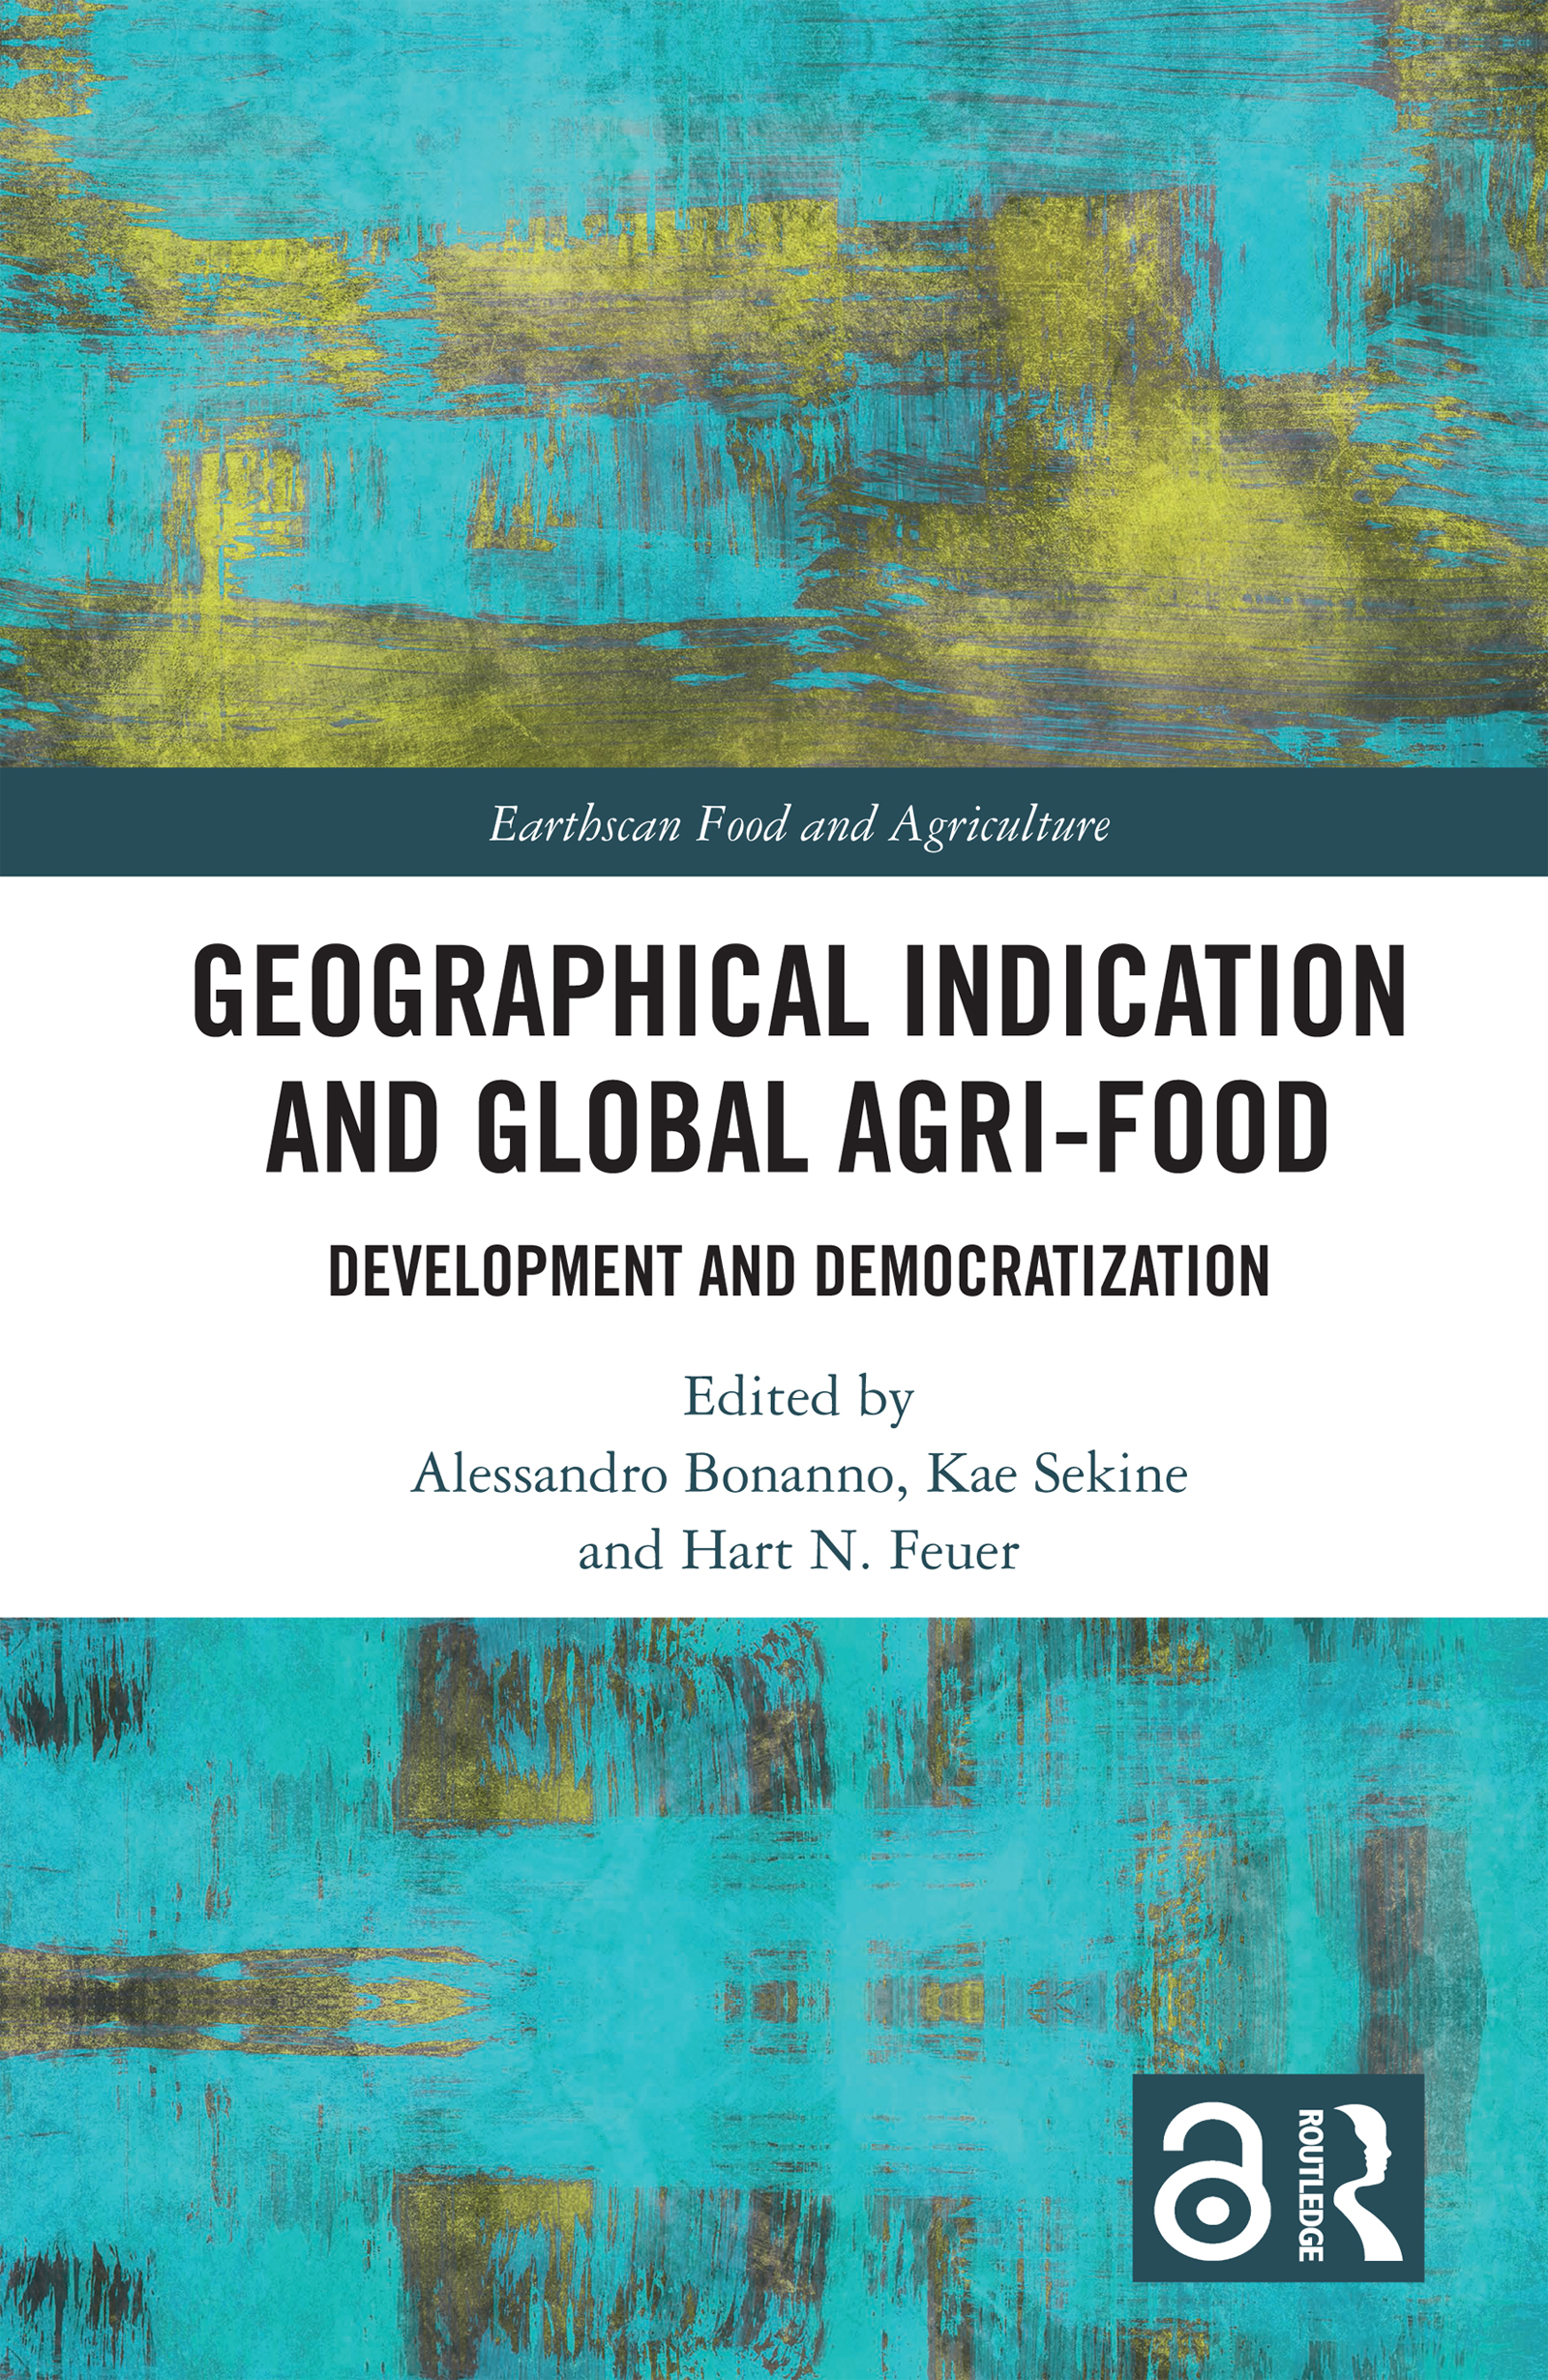 Geographical Indication and Global Agri-Food